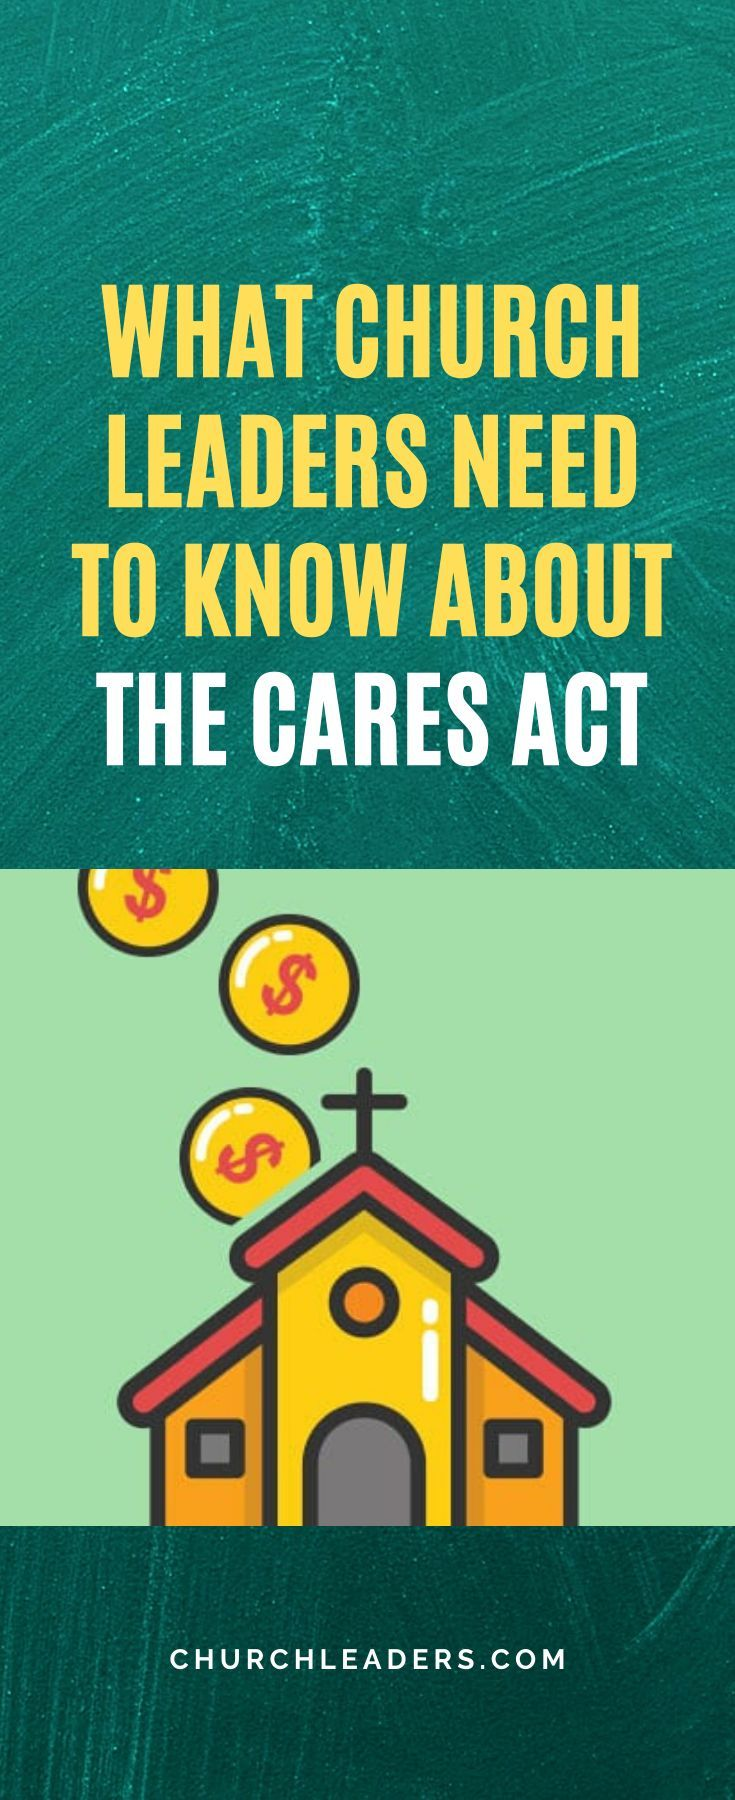 What Church Leaders Need to Know About the CARES Act in